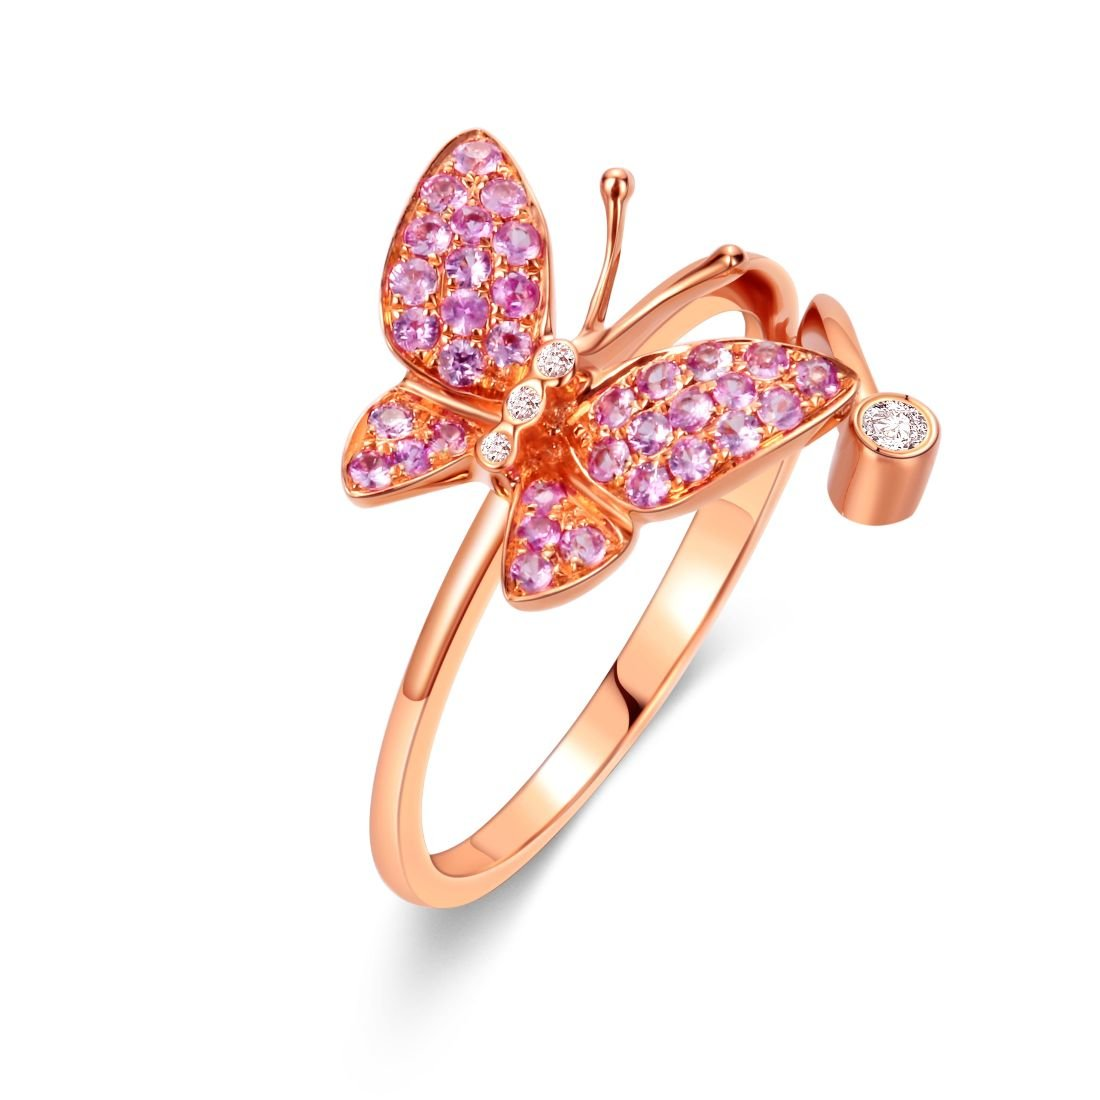 Carleen 18K Solid Rose Gold Genuine Pink Natural Sapphire Diamond Butterfly Ring Dainty Fine Jewelry Rings for Women Girls,Size 5 6 7 8